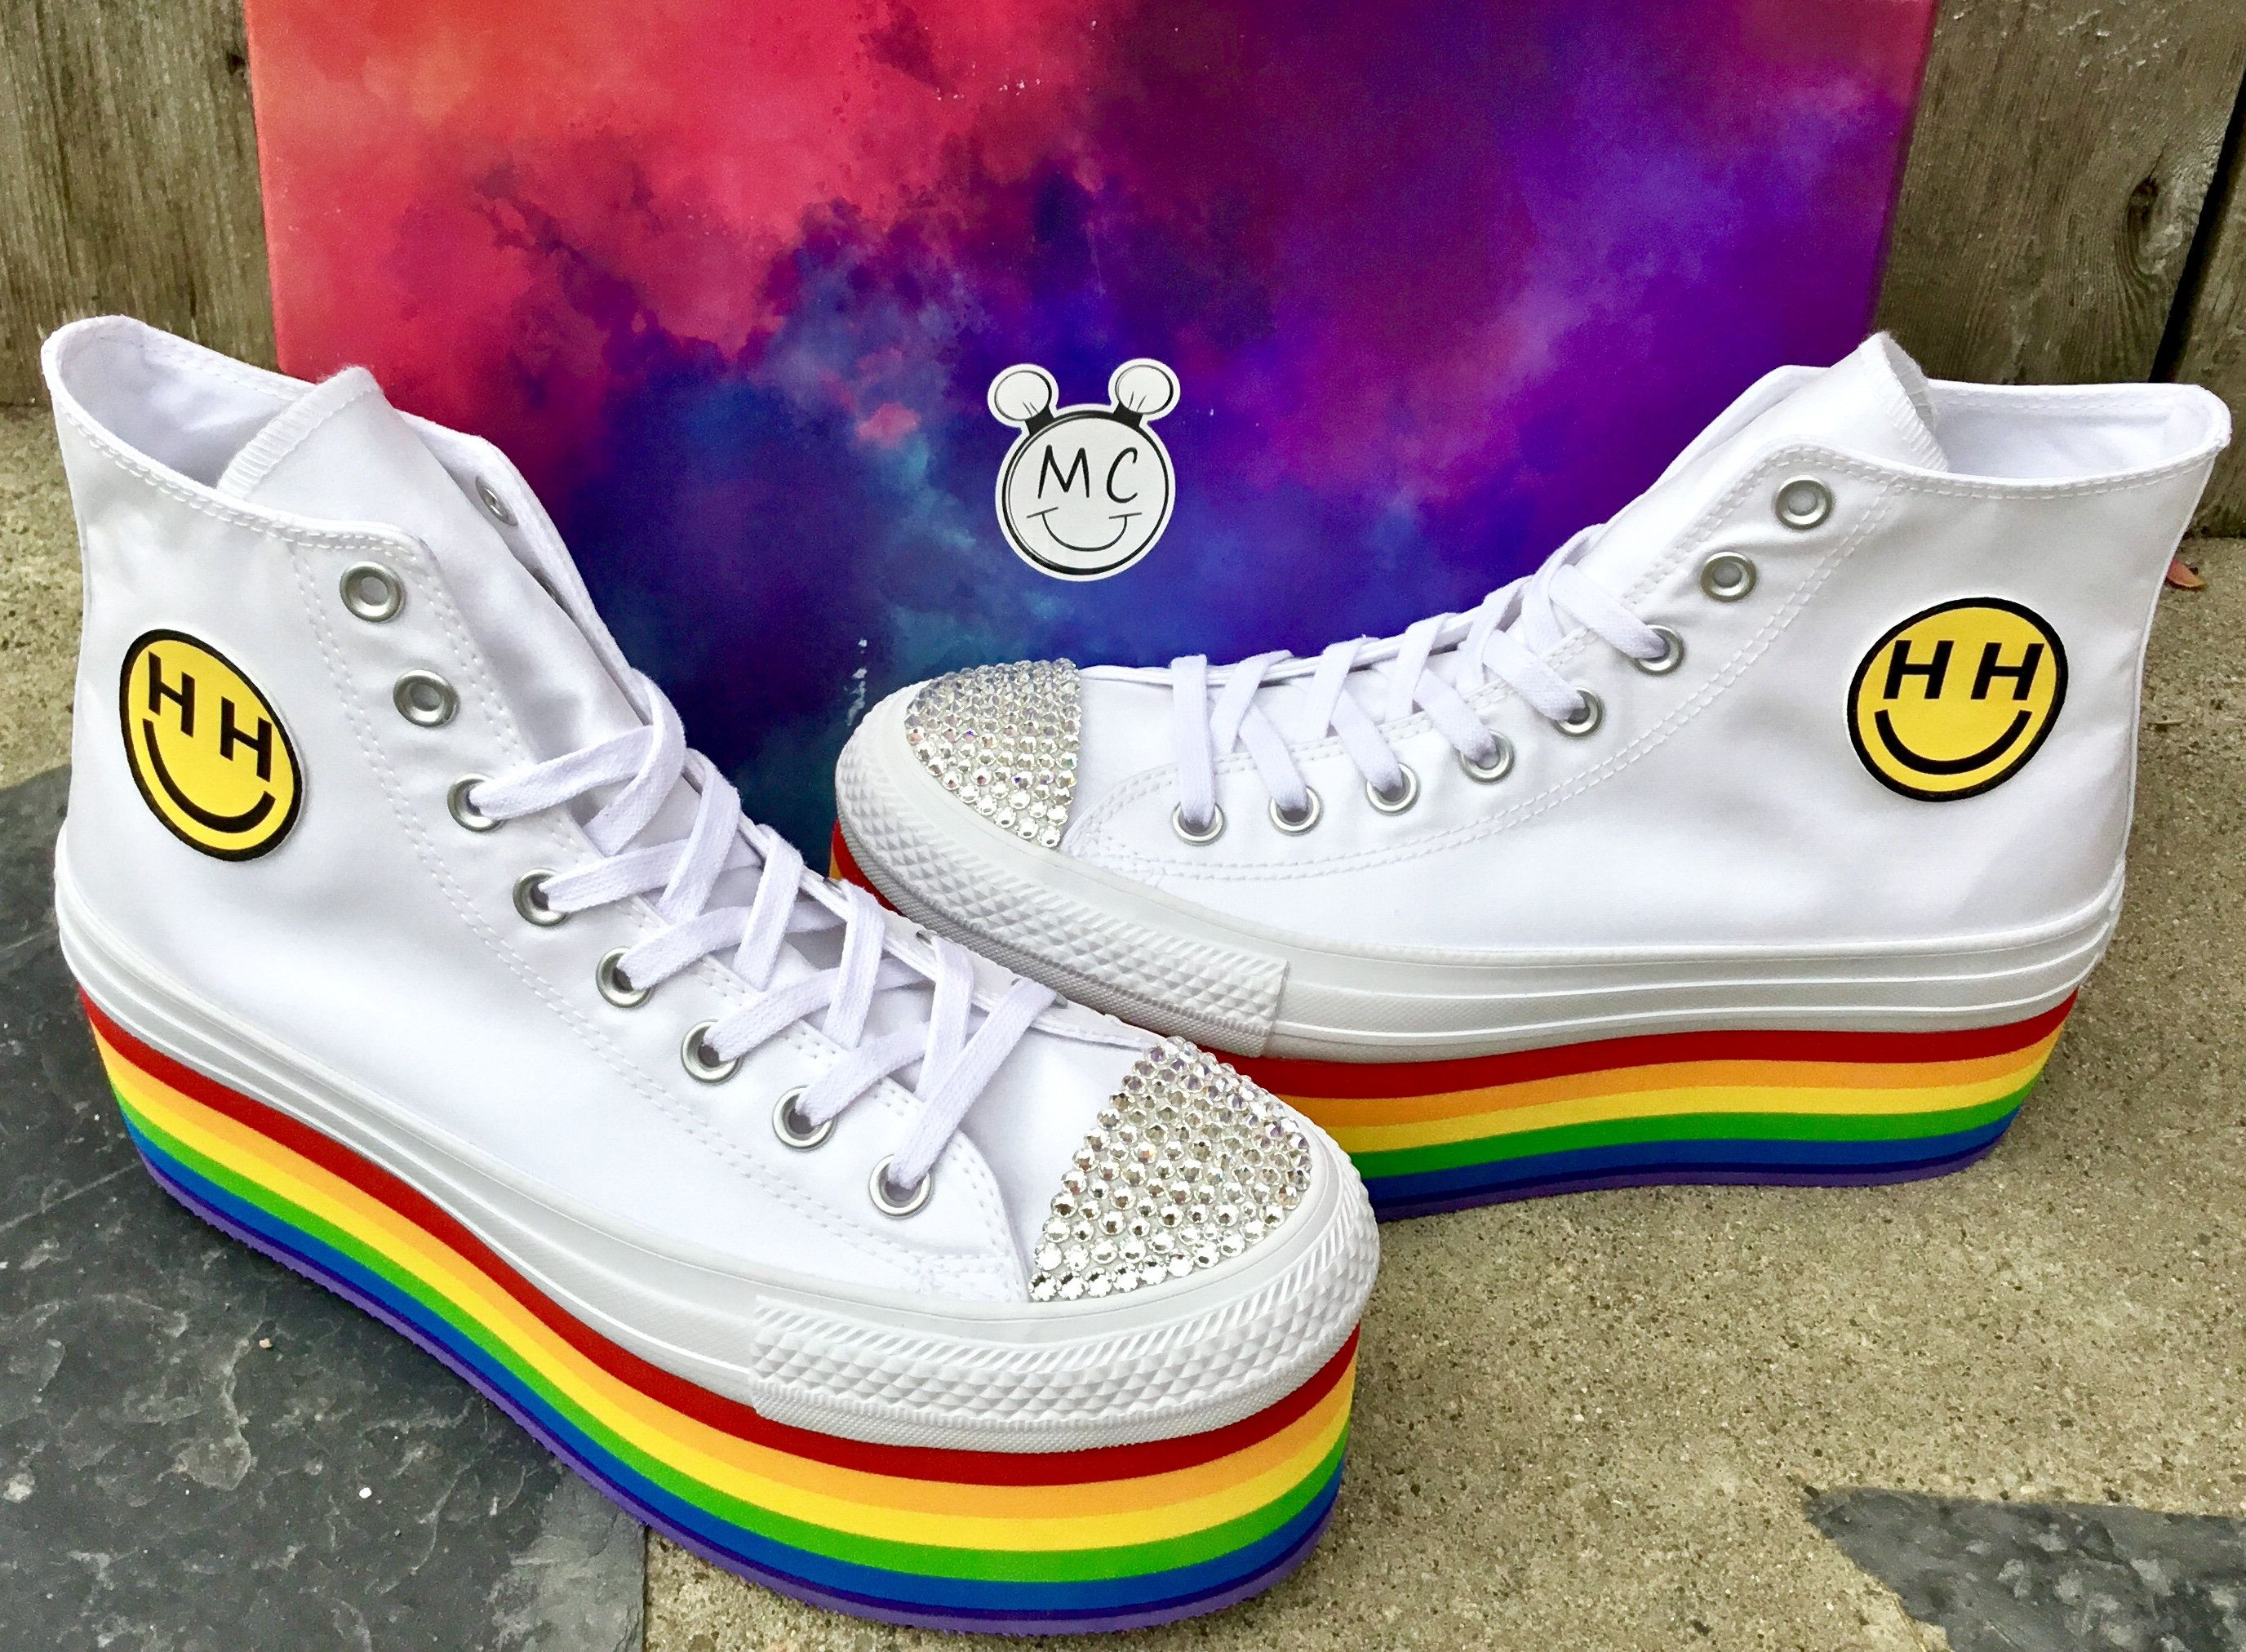 1ad19468347f Rainbow Converse High Top Lady Pride Platform Glitter 2018 Miley Cyrus  Custom LGTBQ w  Swarovski Crystal Chuck Taylor All Star Sneakers Shoe by ...